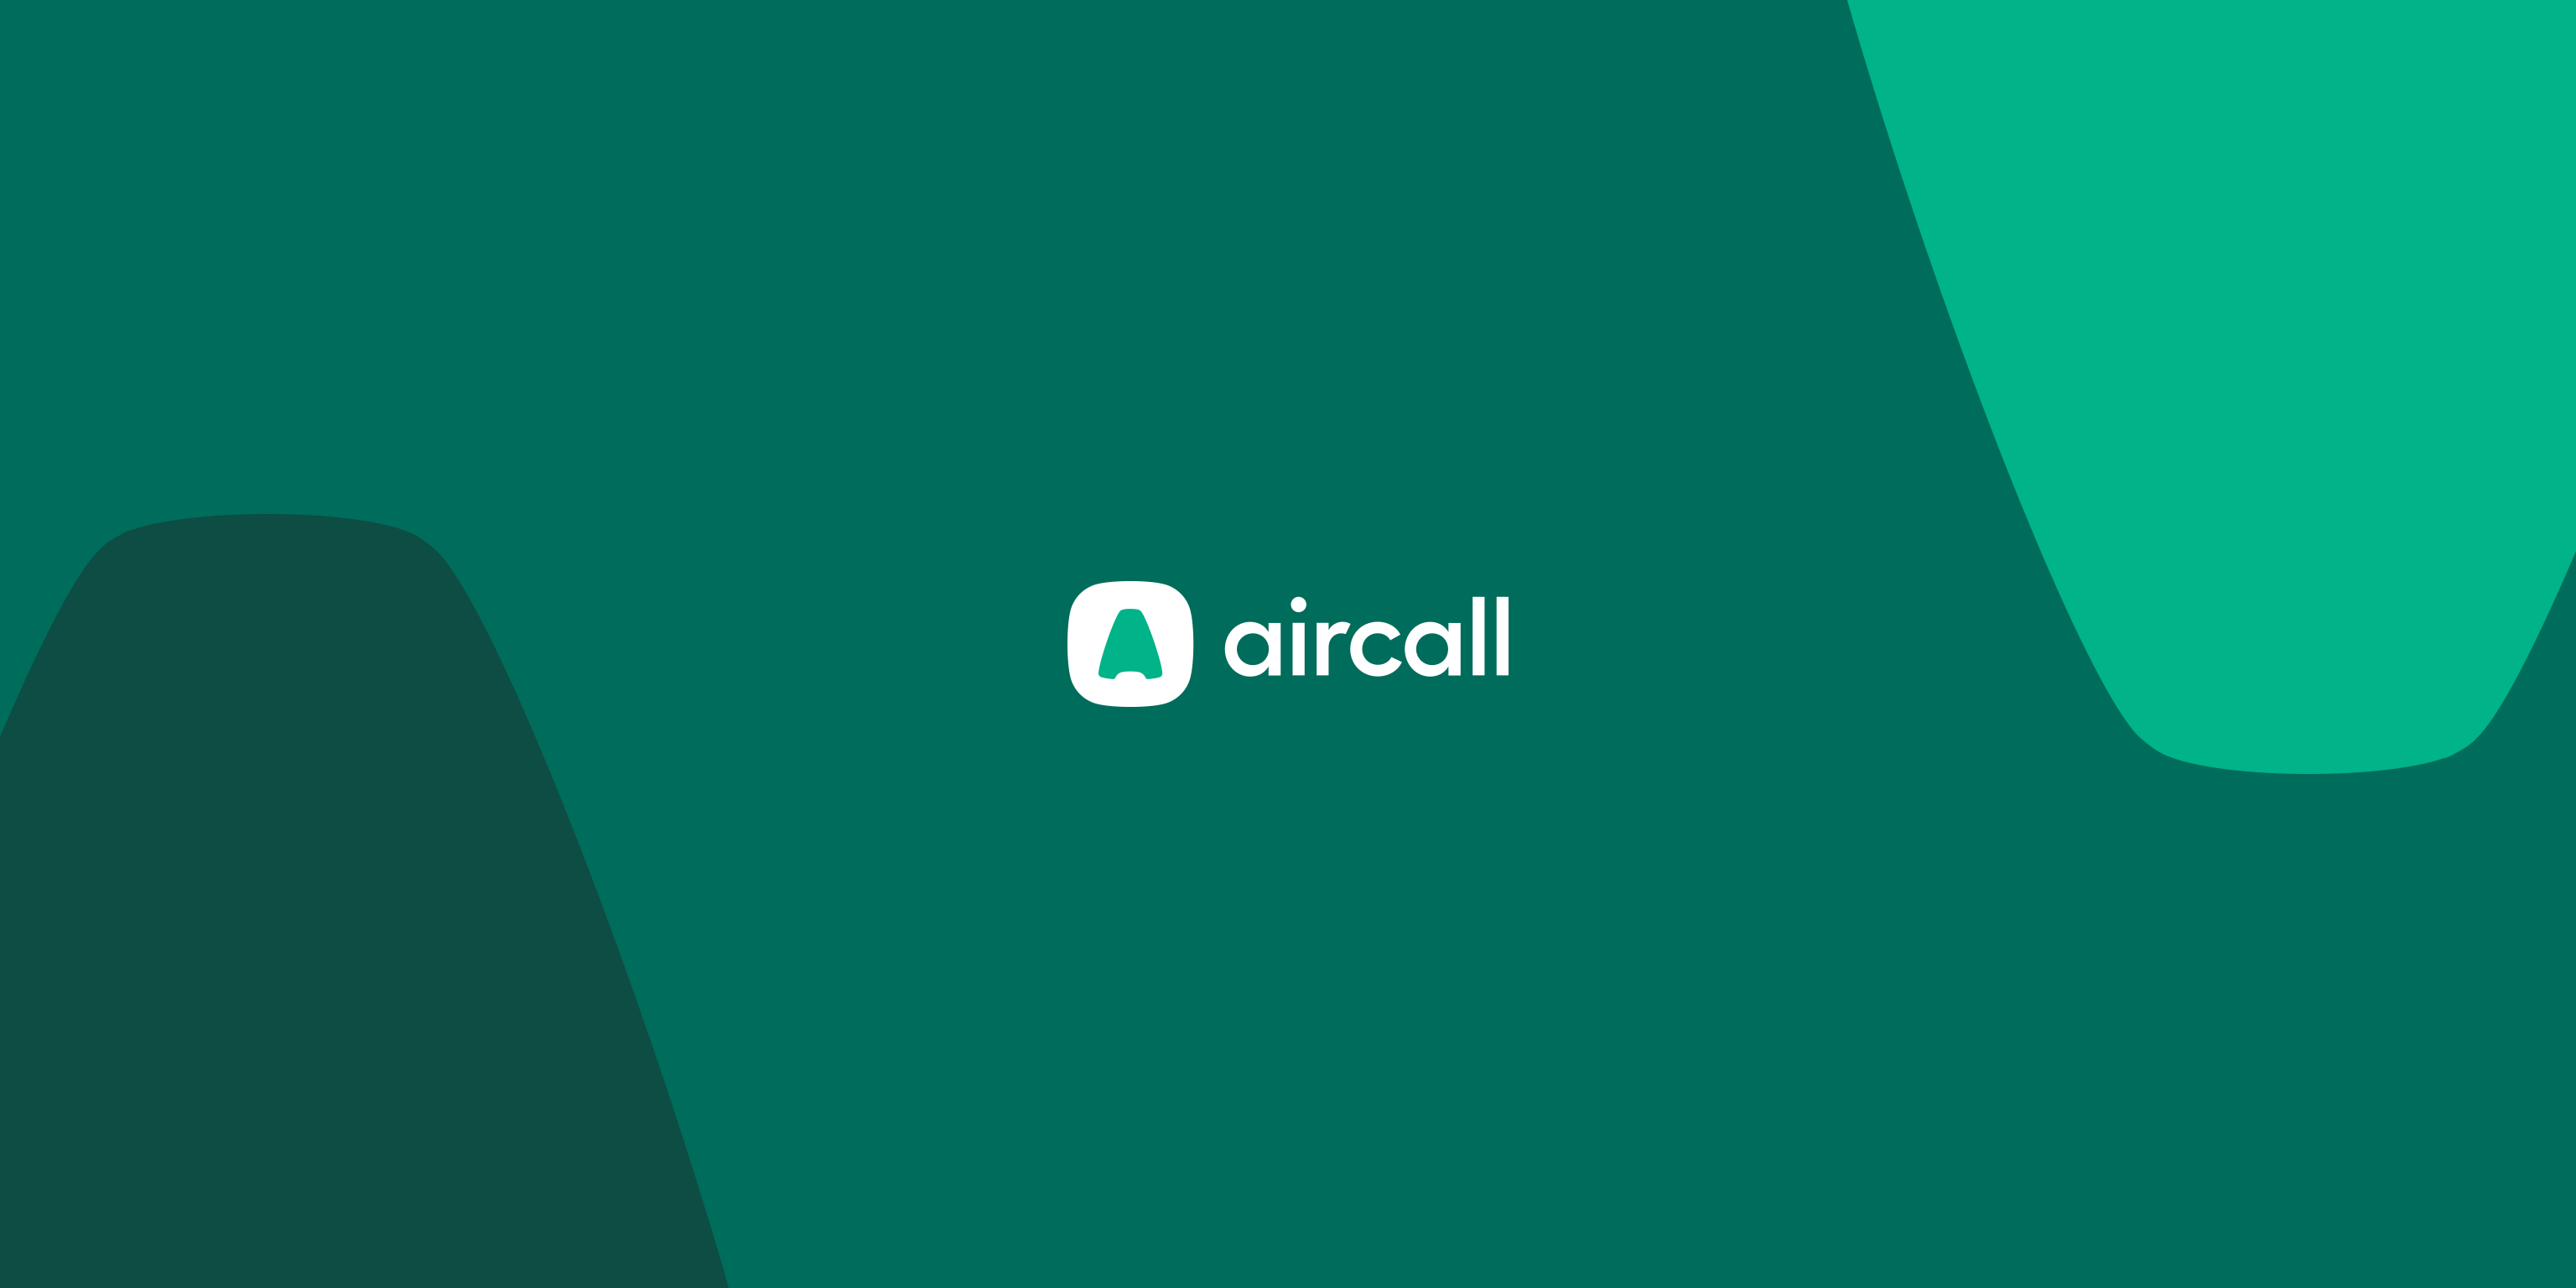 Aircall Cloud PBX Phone System